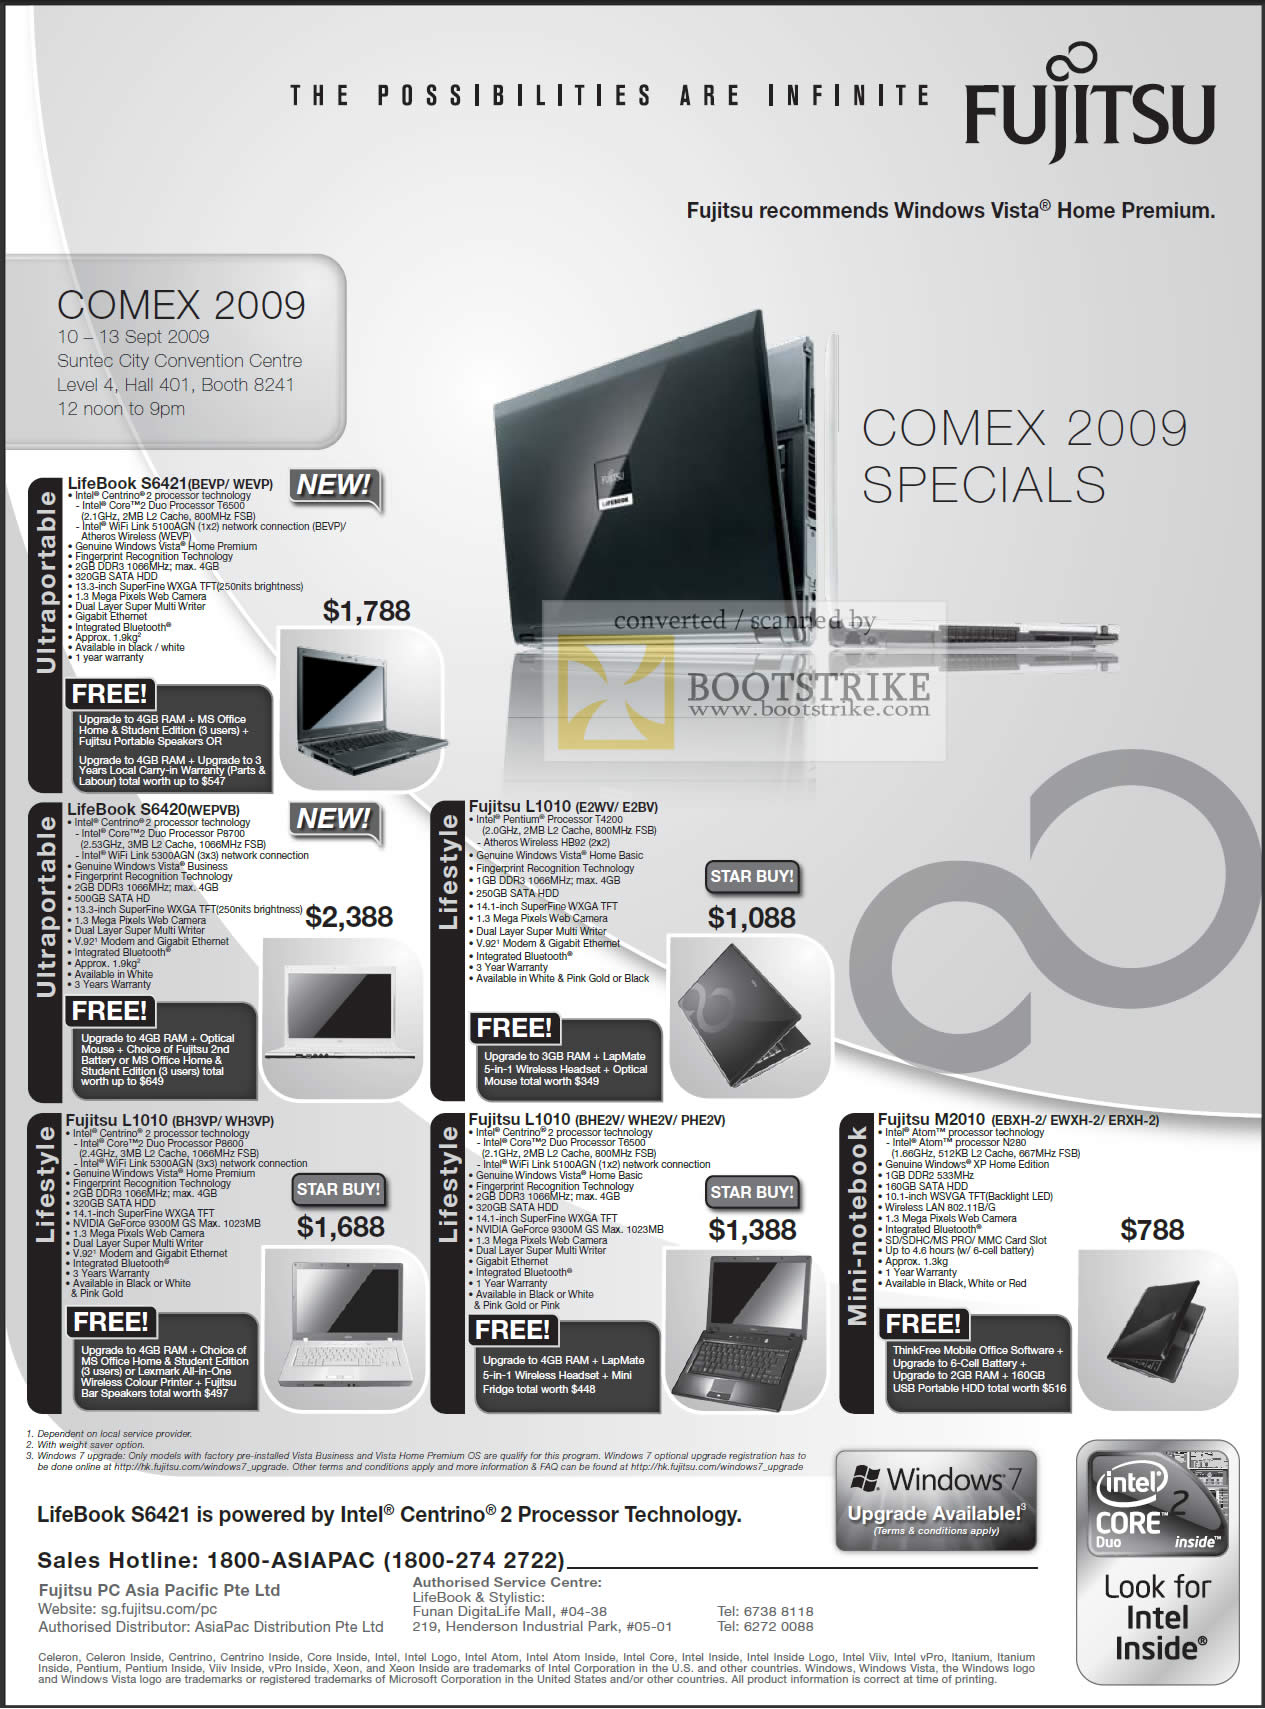 Comex 2009 price list image brochure of Fujitsu Notebooks LifeBook S6421 S6420 L1010 M2010 Lifestyle Ultraportable Mini